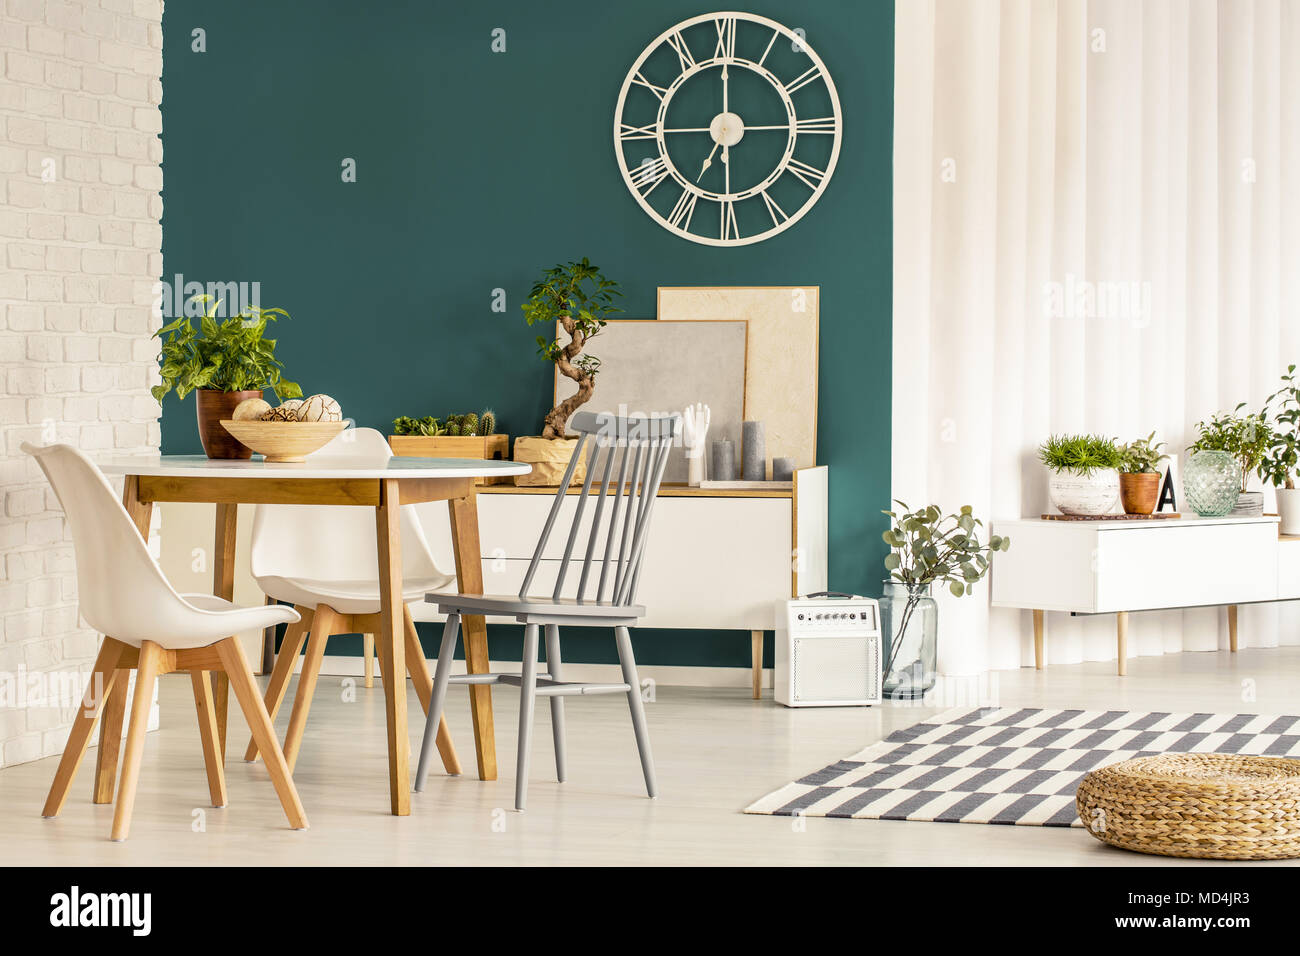 Bright, Spacious Dining Room Interior With White And Gray Chairs At A Round  Table And Wooden Cupboard Against Green Wall